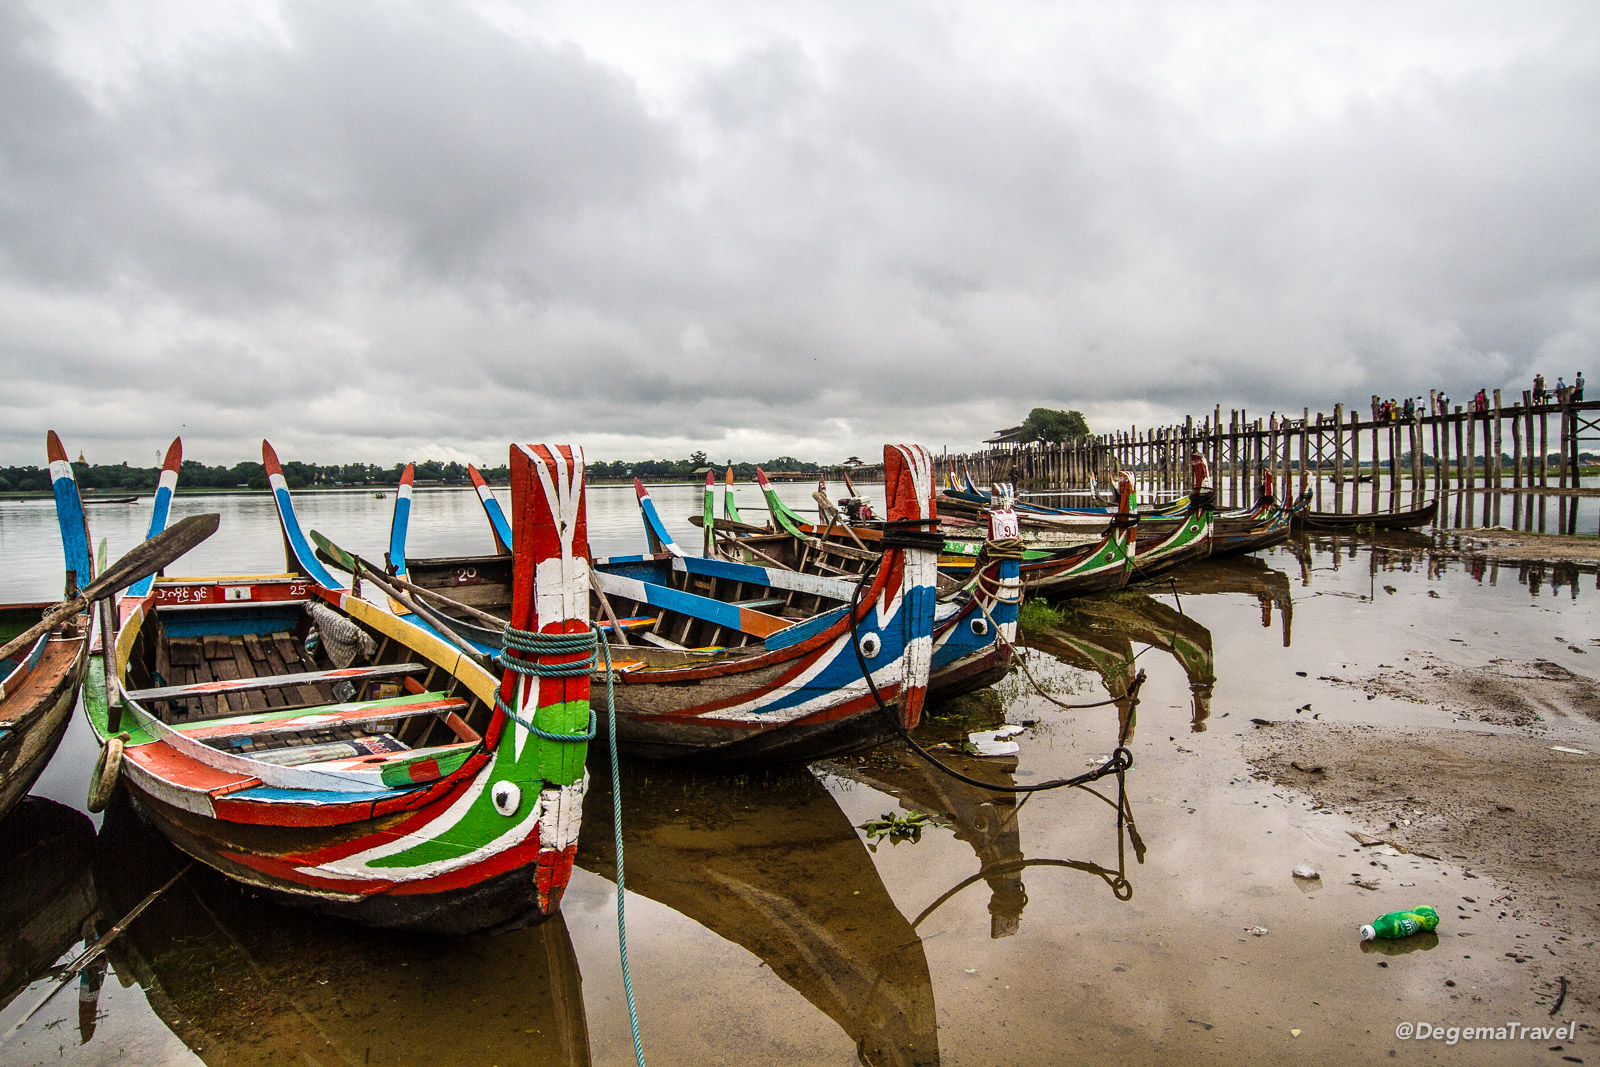 Colourful local boats at U Bein Bridge near Mandalay, Myanmar